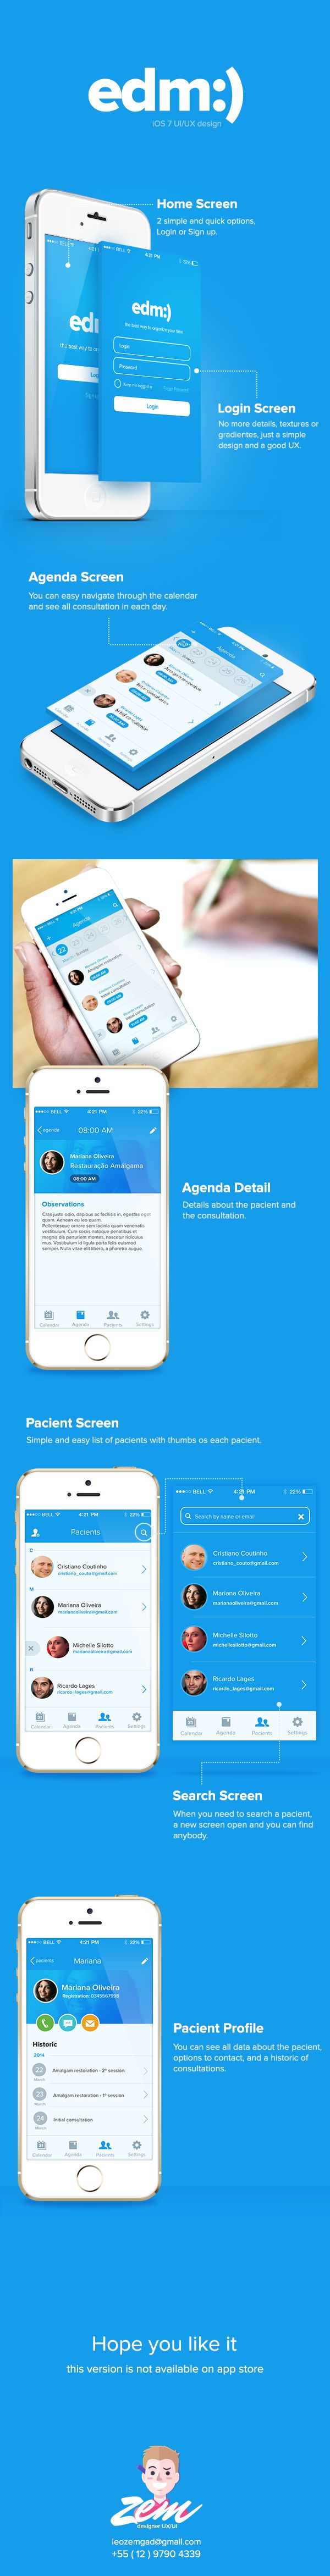 EDM - New mobile design by Leonardo Zem, via Behance... Tendencies for 2014 in UI/UX design.